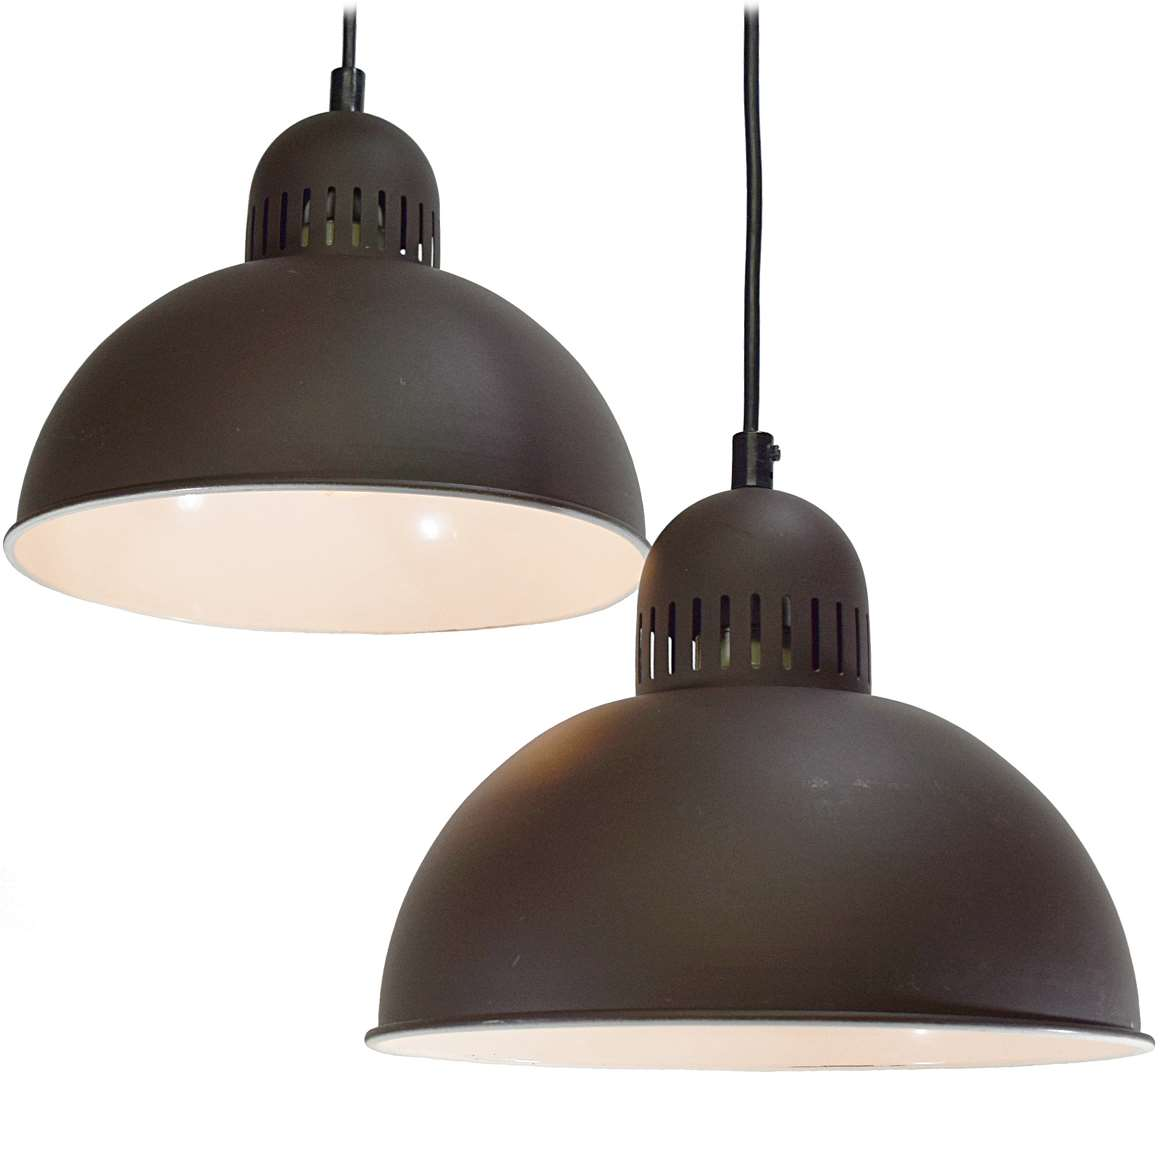 1970s Pendant Lights